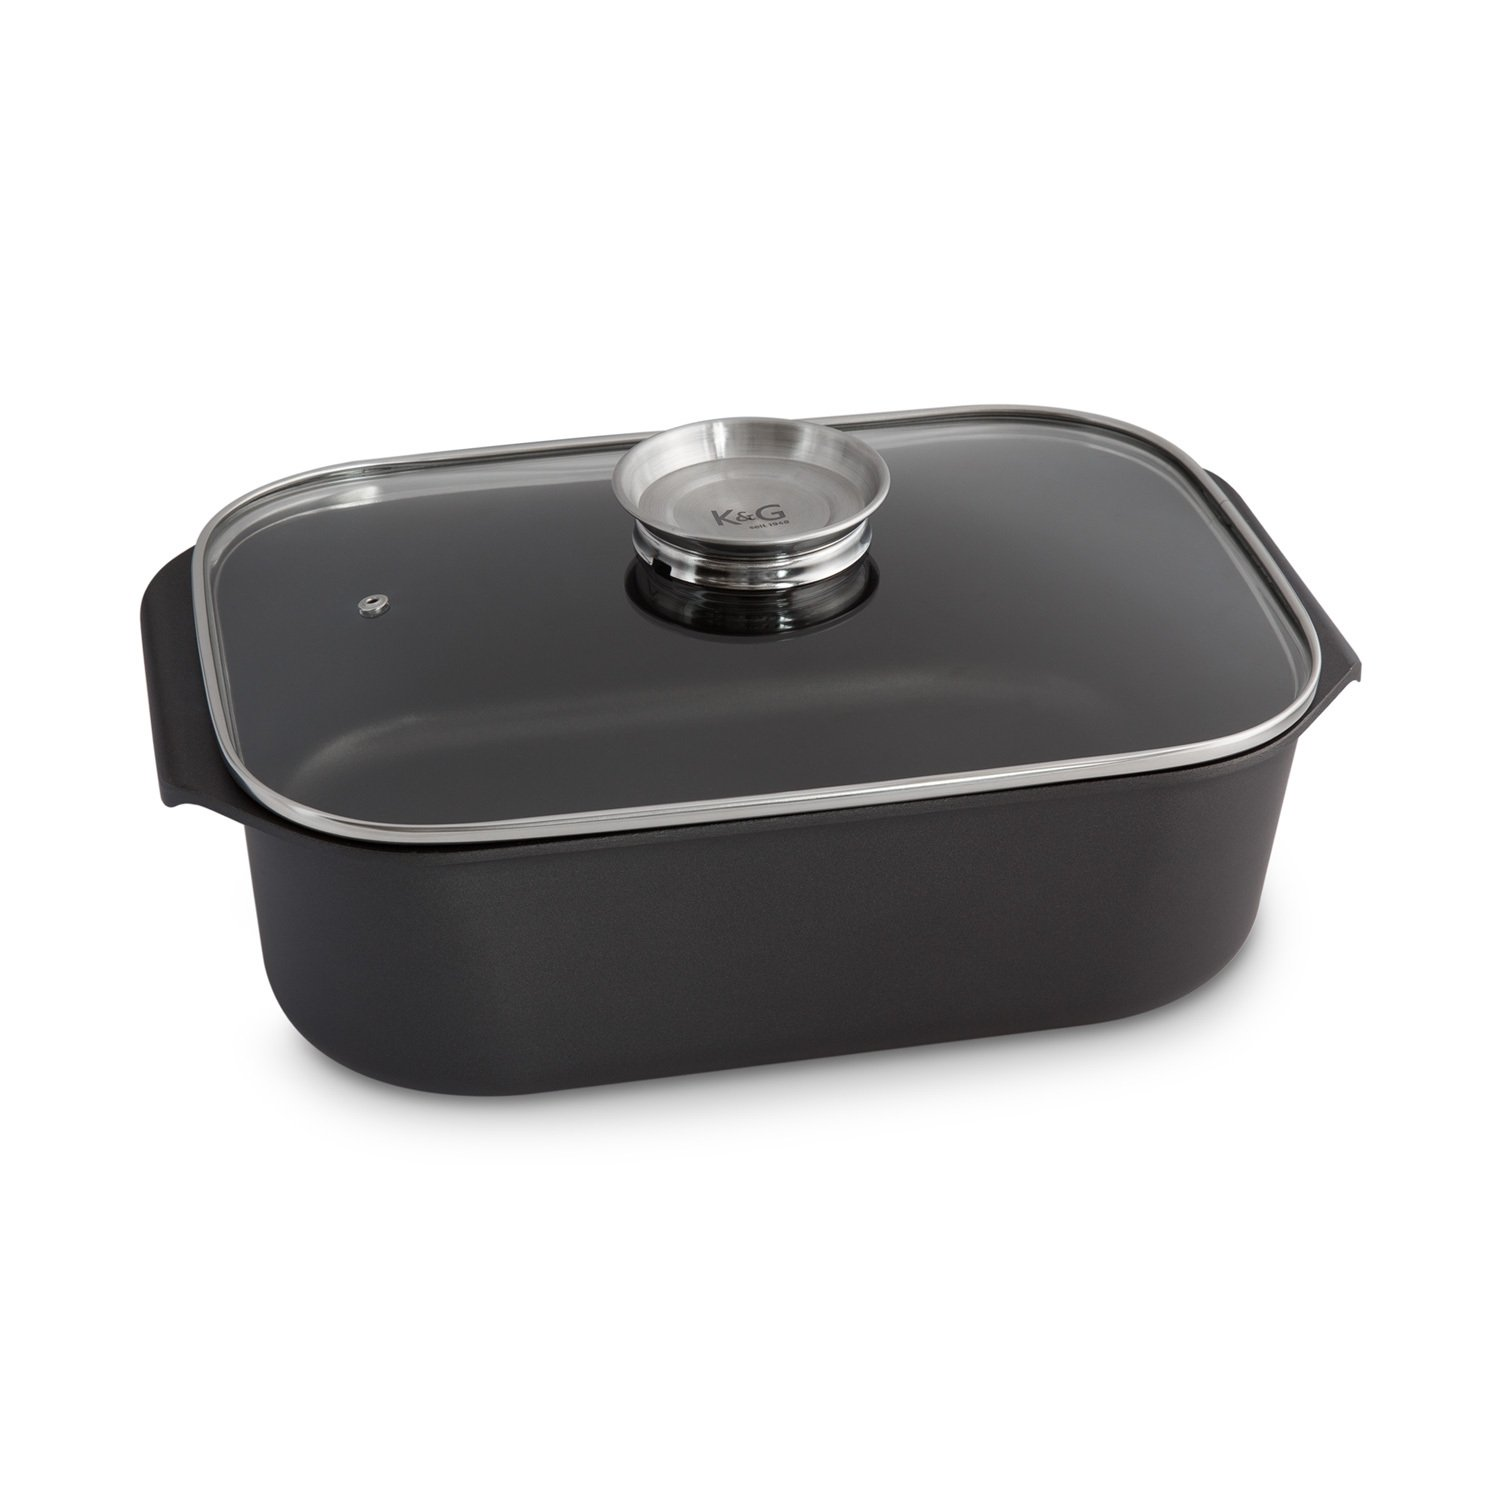 Cast Aluminium Casserole with Glass Lid and Integrated Aroma Button by K & G seit 1948 Robust Cast Aluminium Roaster with Steam Vent Non-Stick; Teflon Coating with or Without Optional Grill Lid